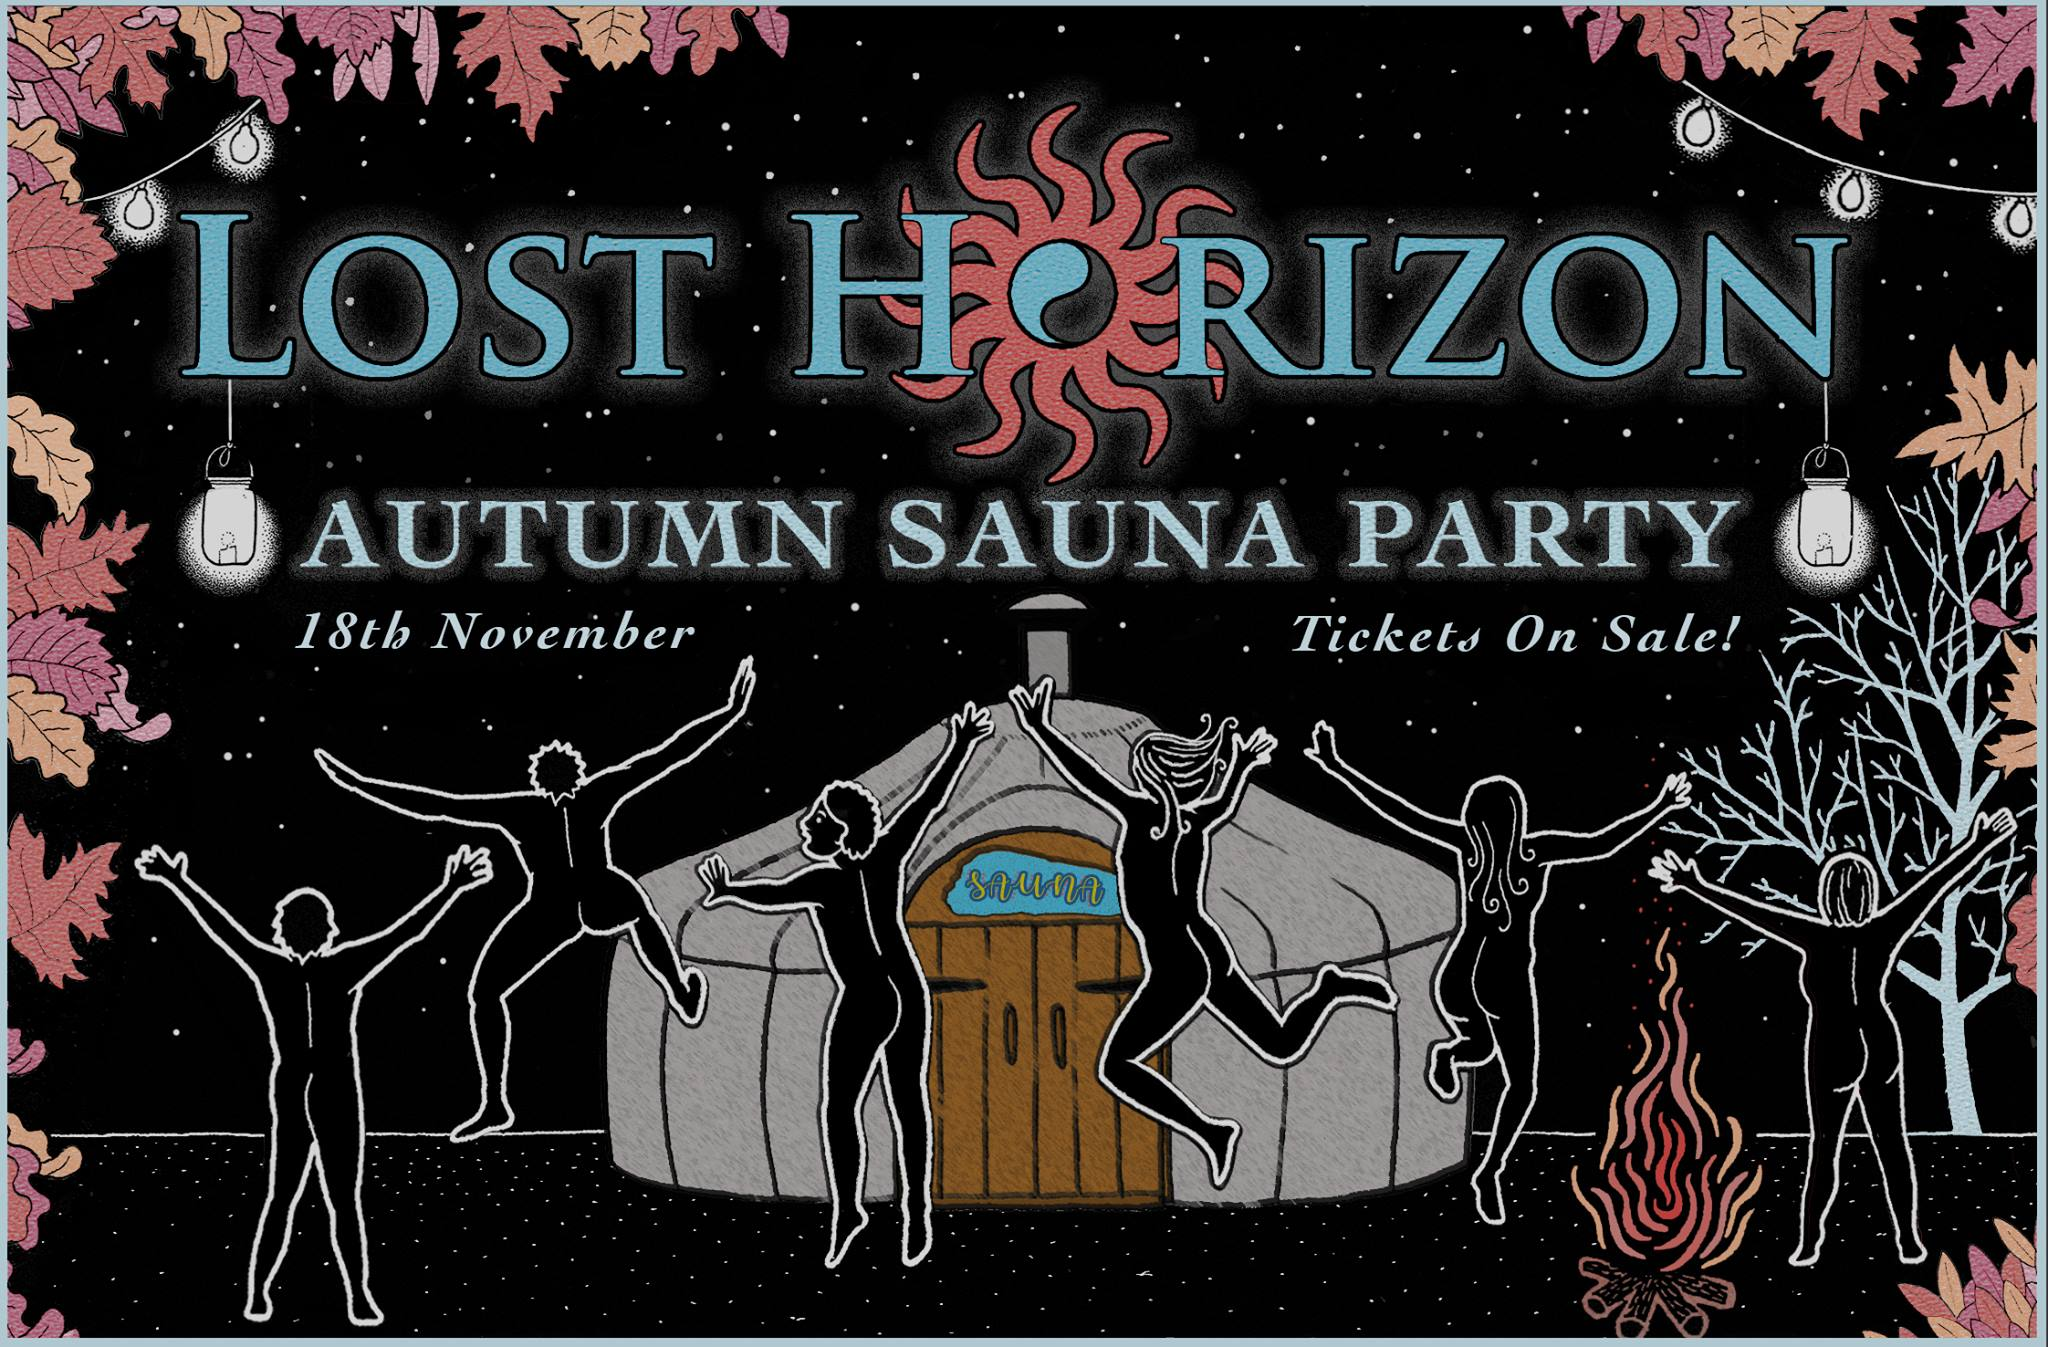 Lost Horizon Autumn Sauna Party 18th Nov Tickets On Sale